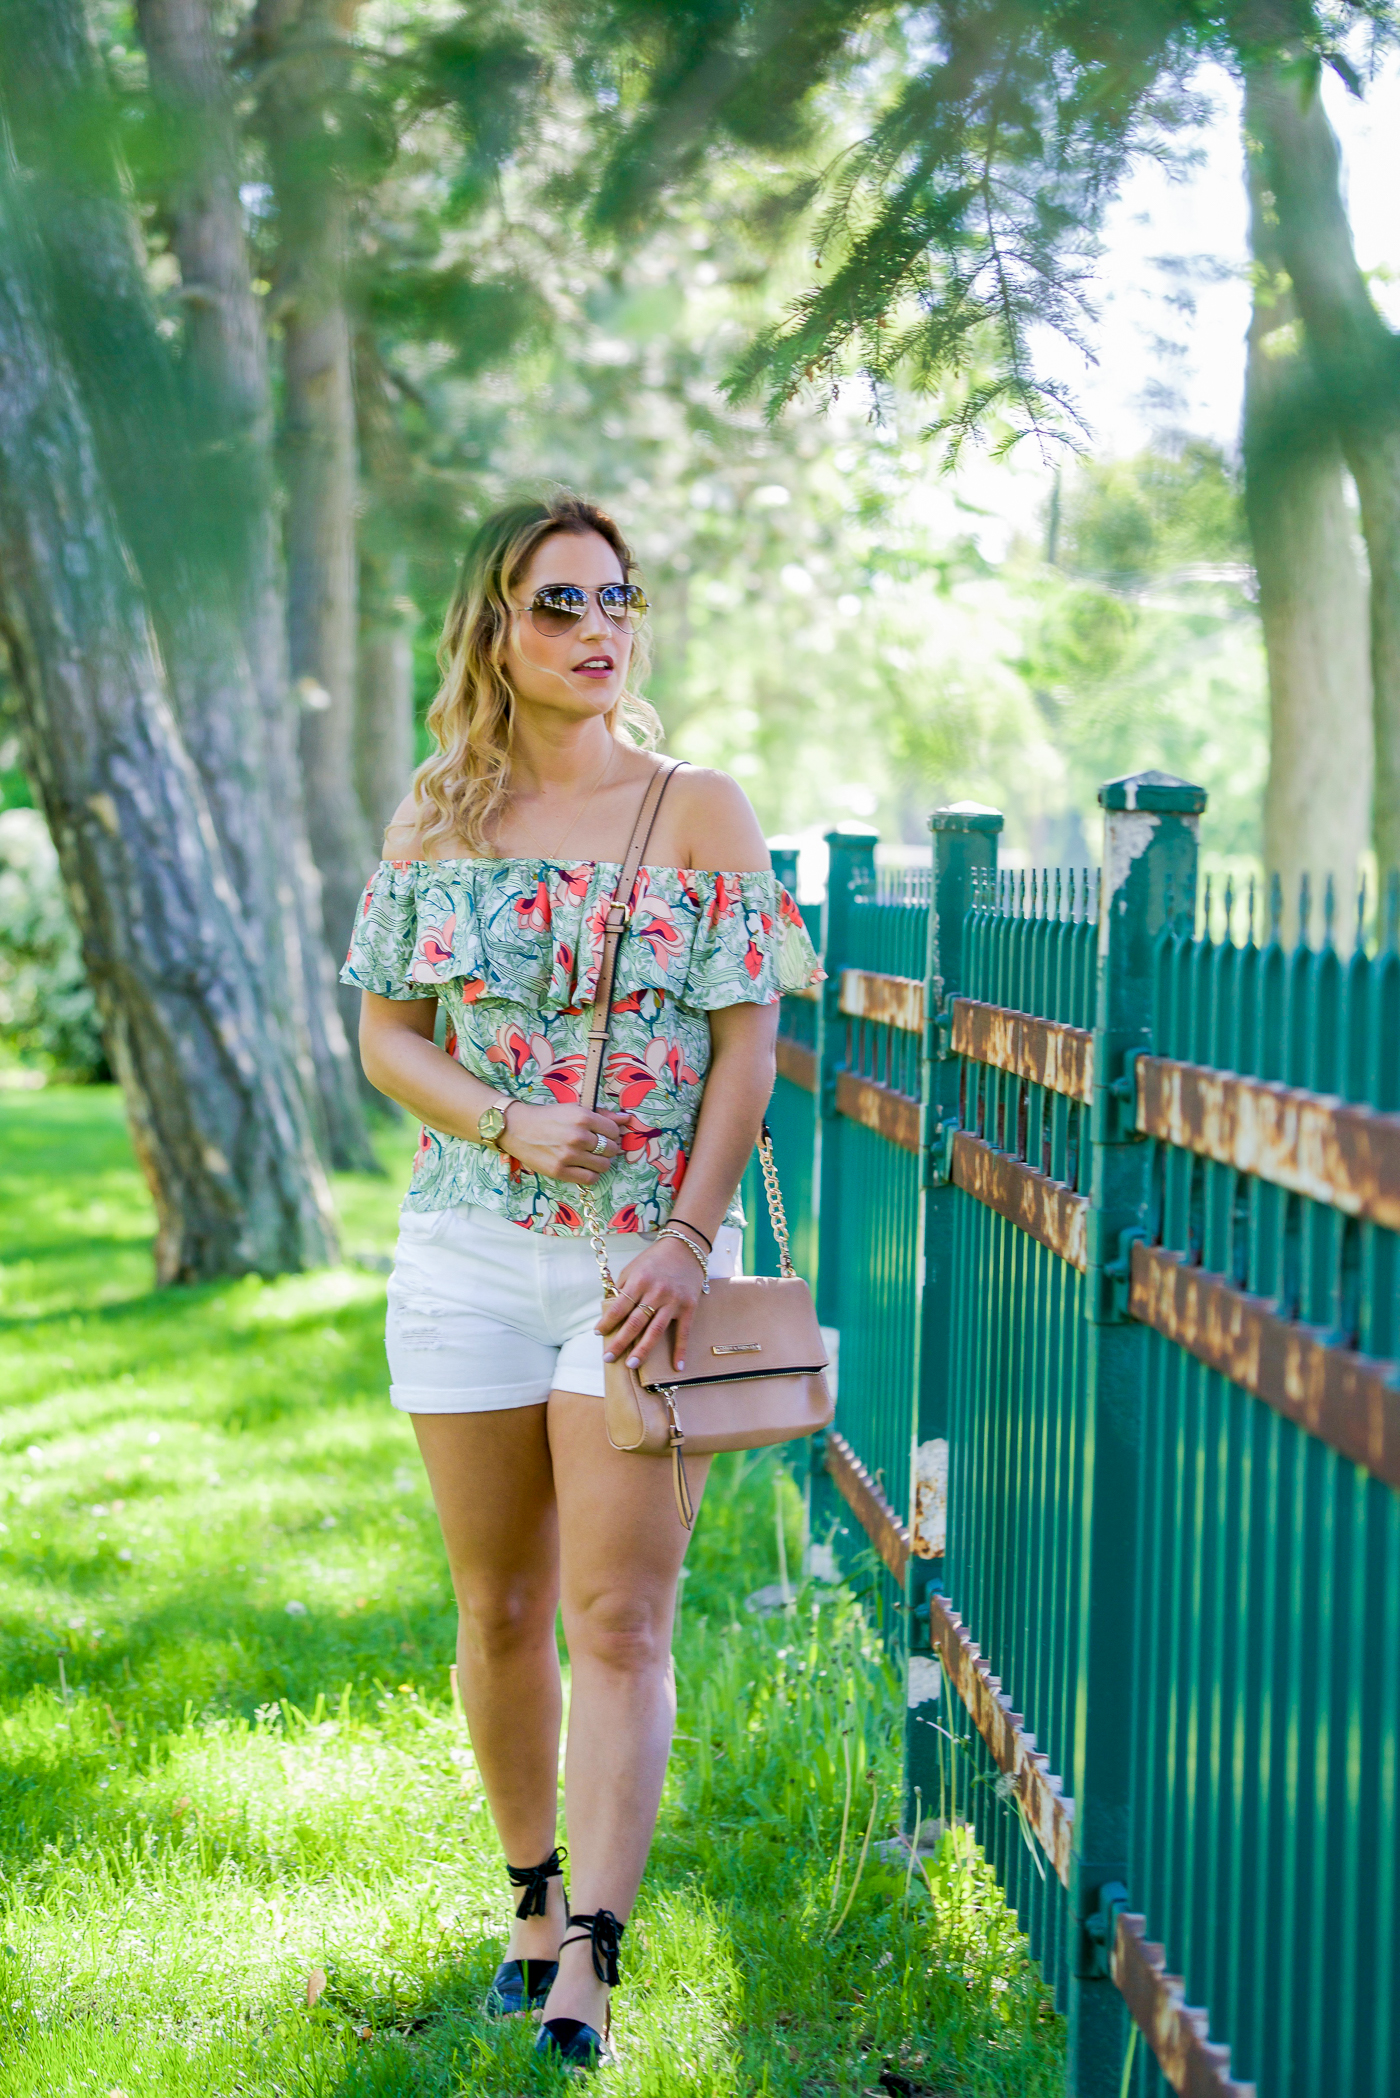 Summer outfit from GUESS with a printed off the shoulder top and white shorts